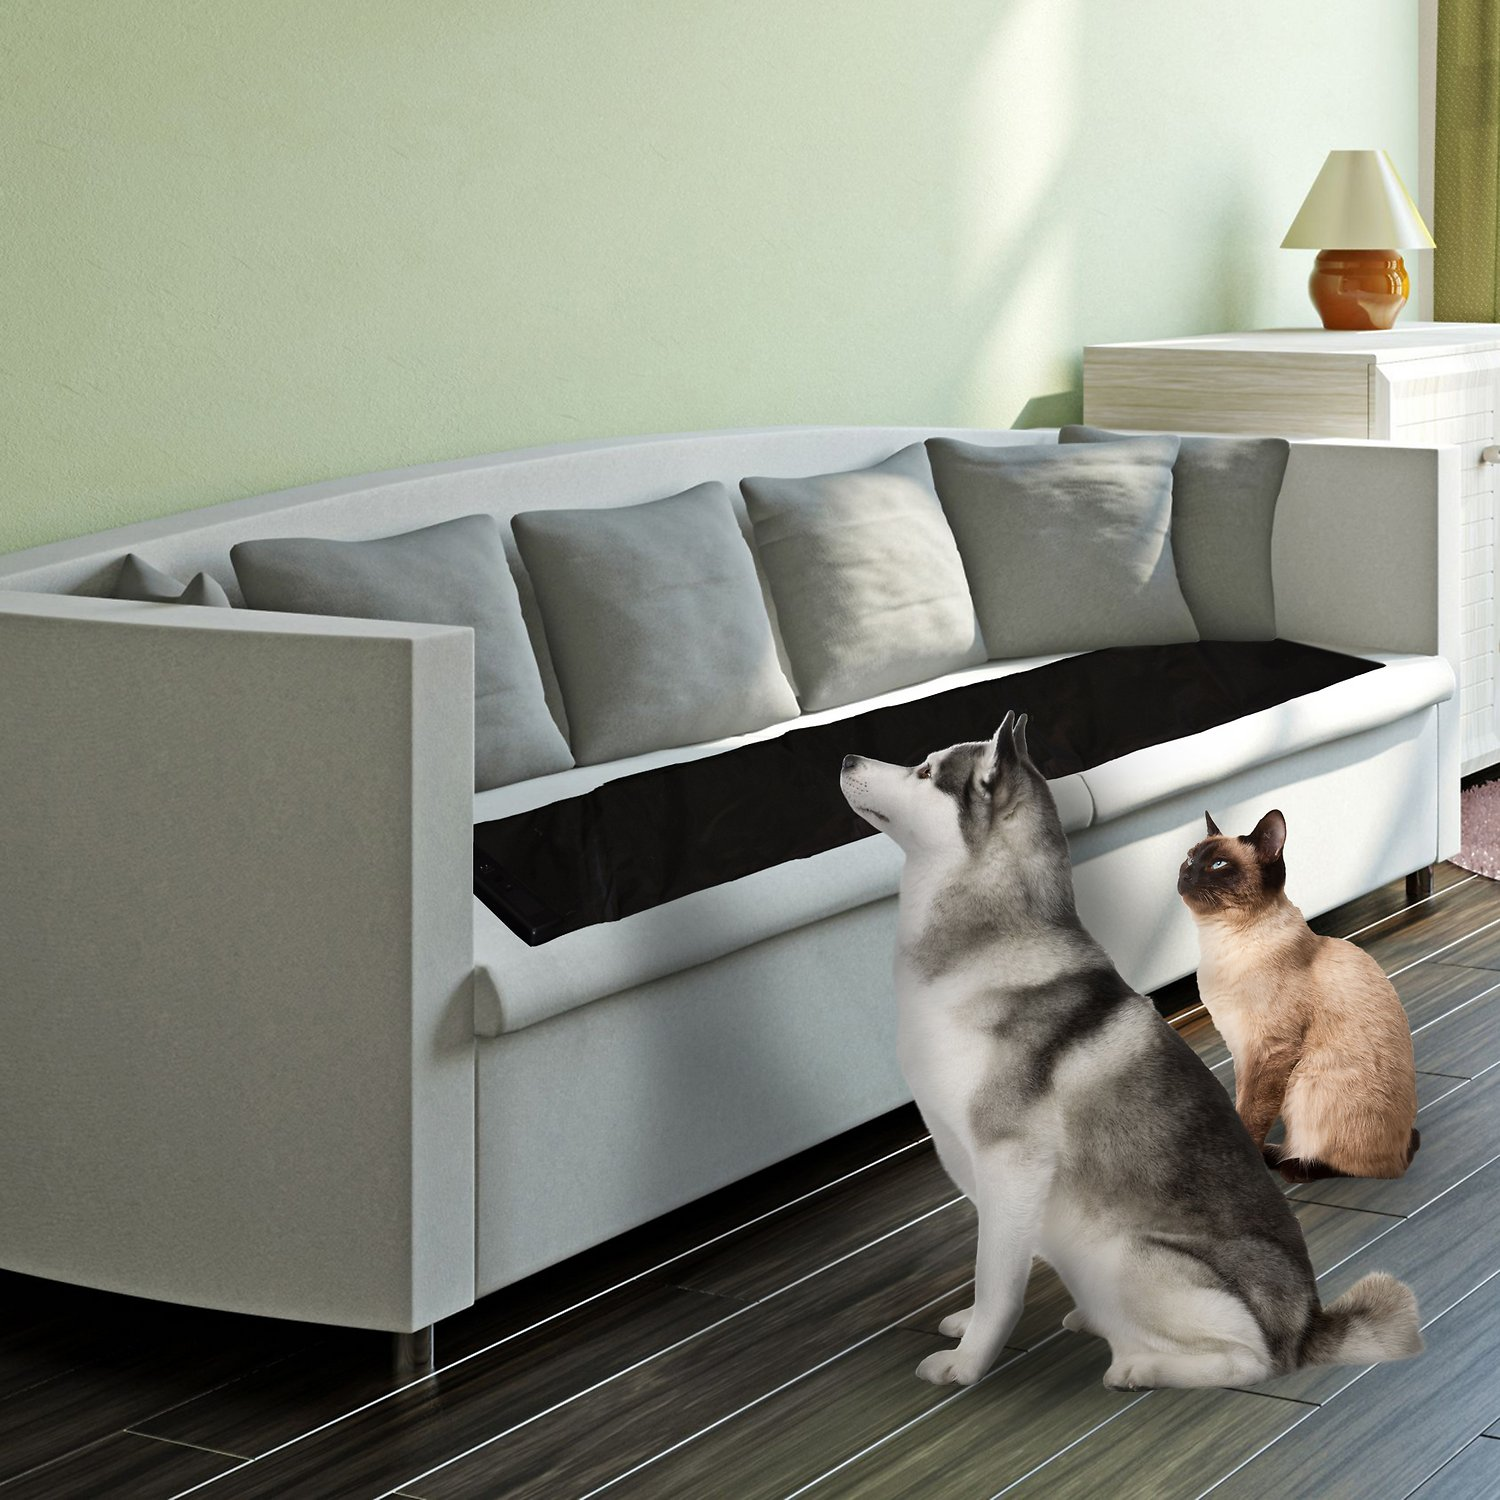 what can i put on furniture to keep cats off